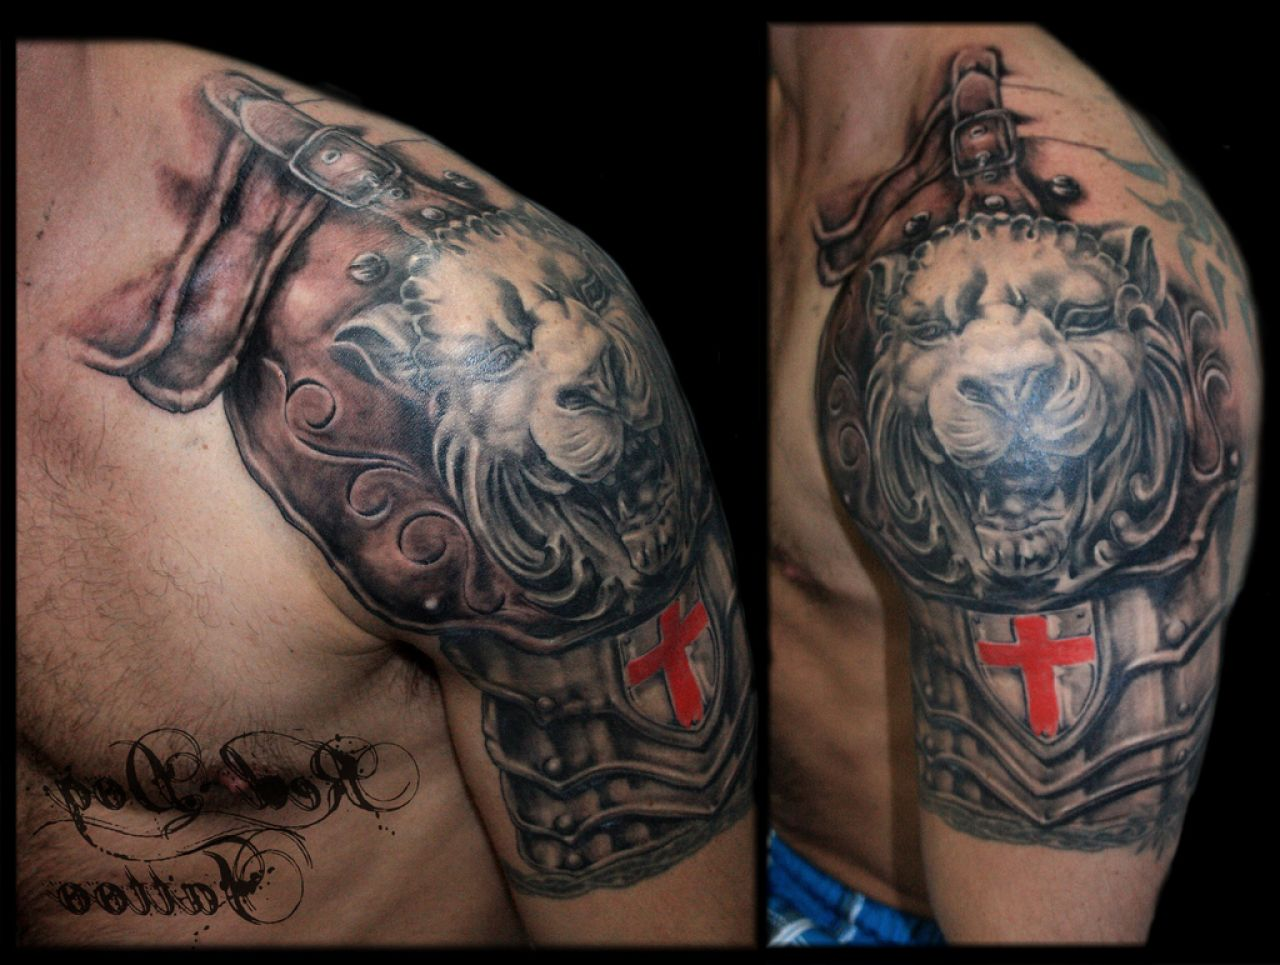 Armor And Lion Tattoos On Shoulder (2)